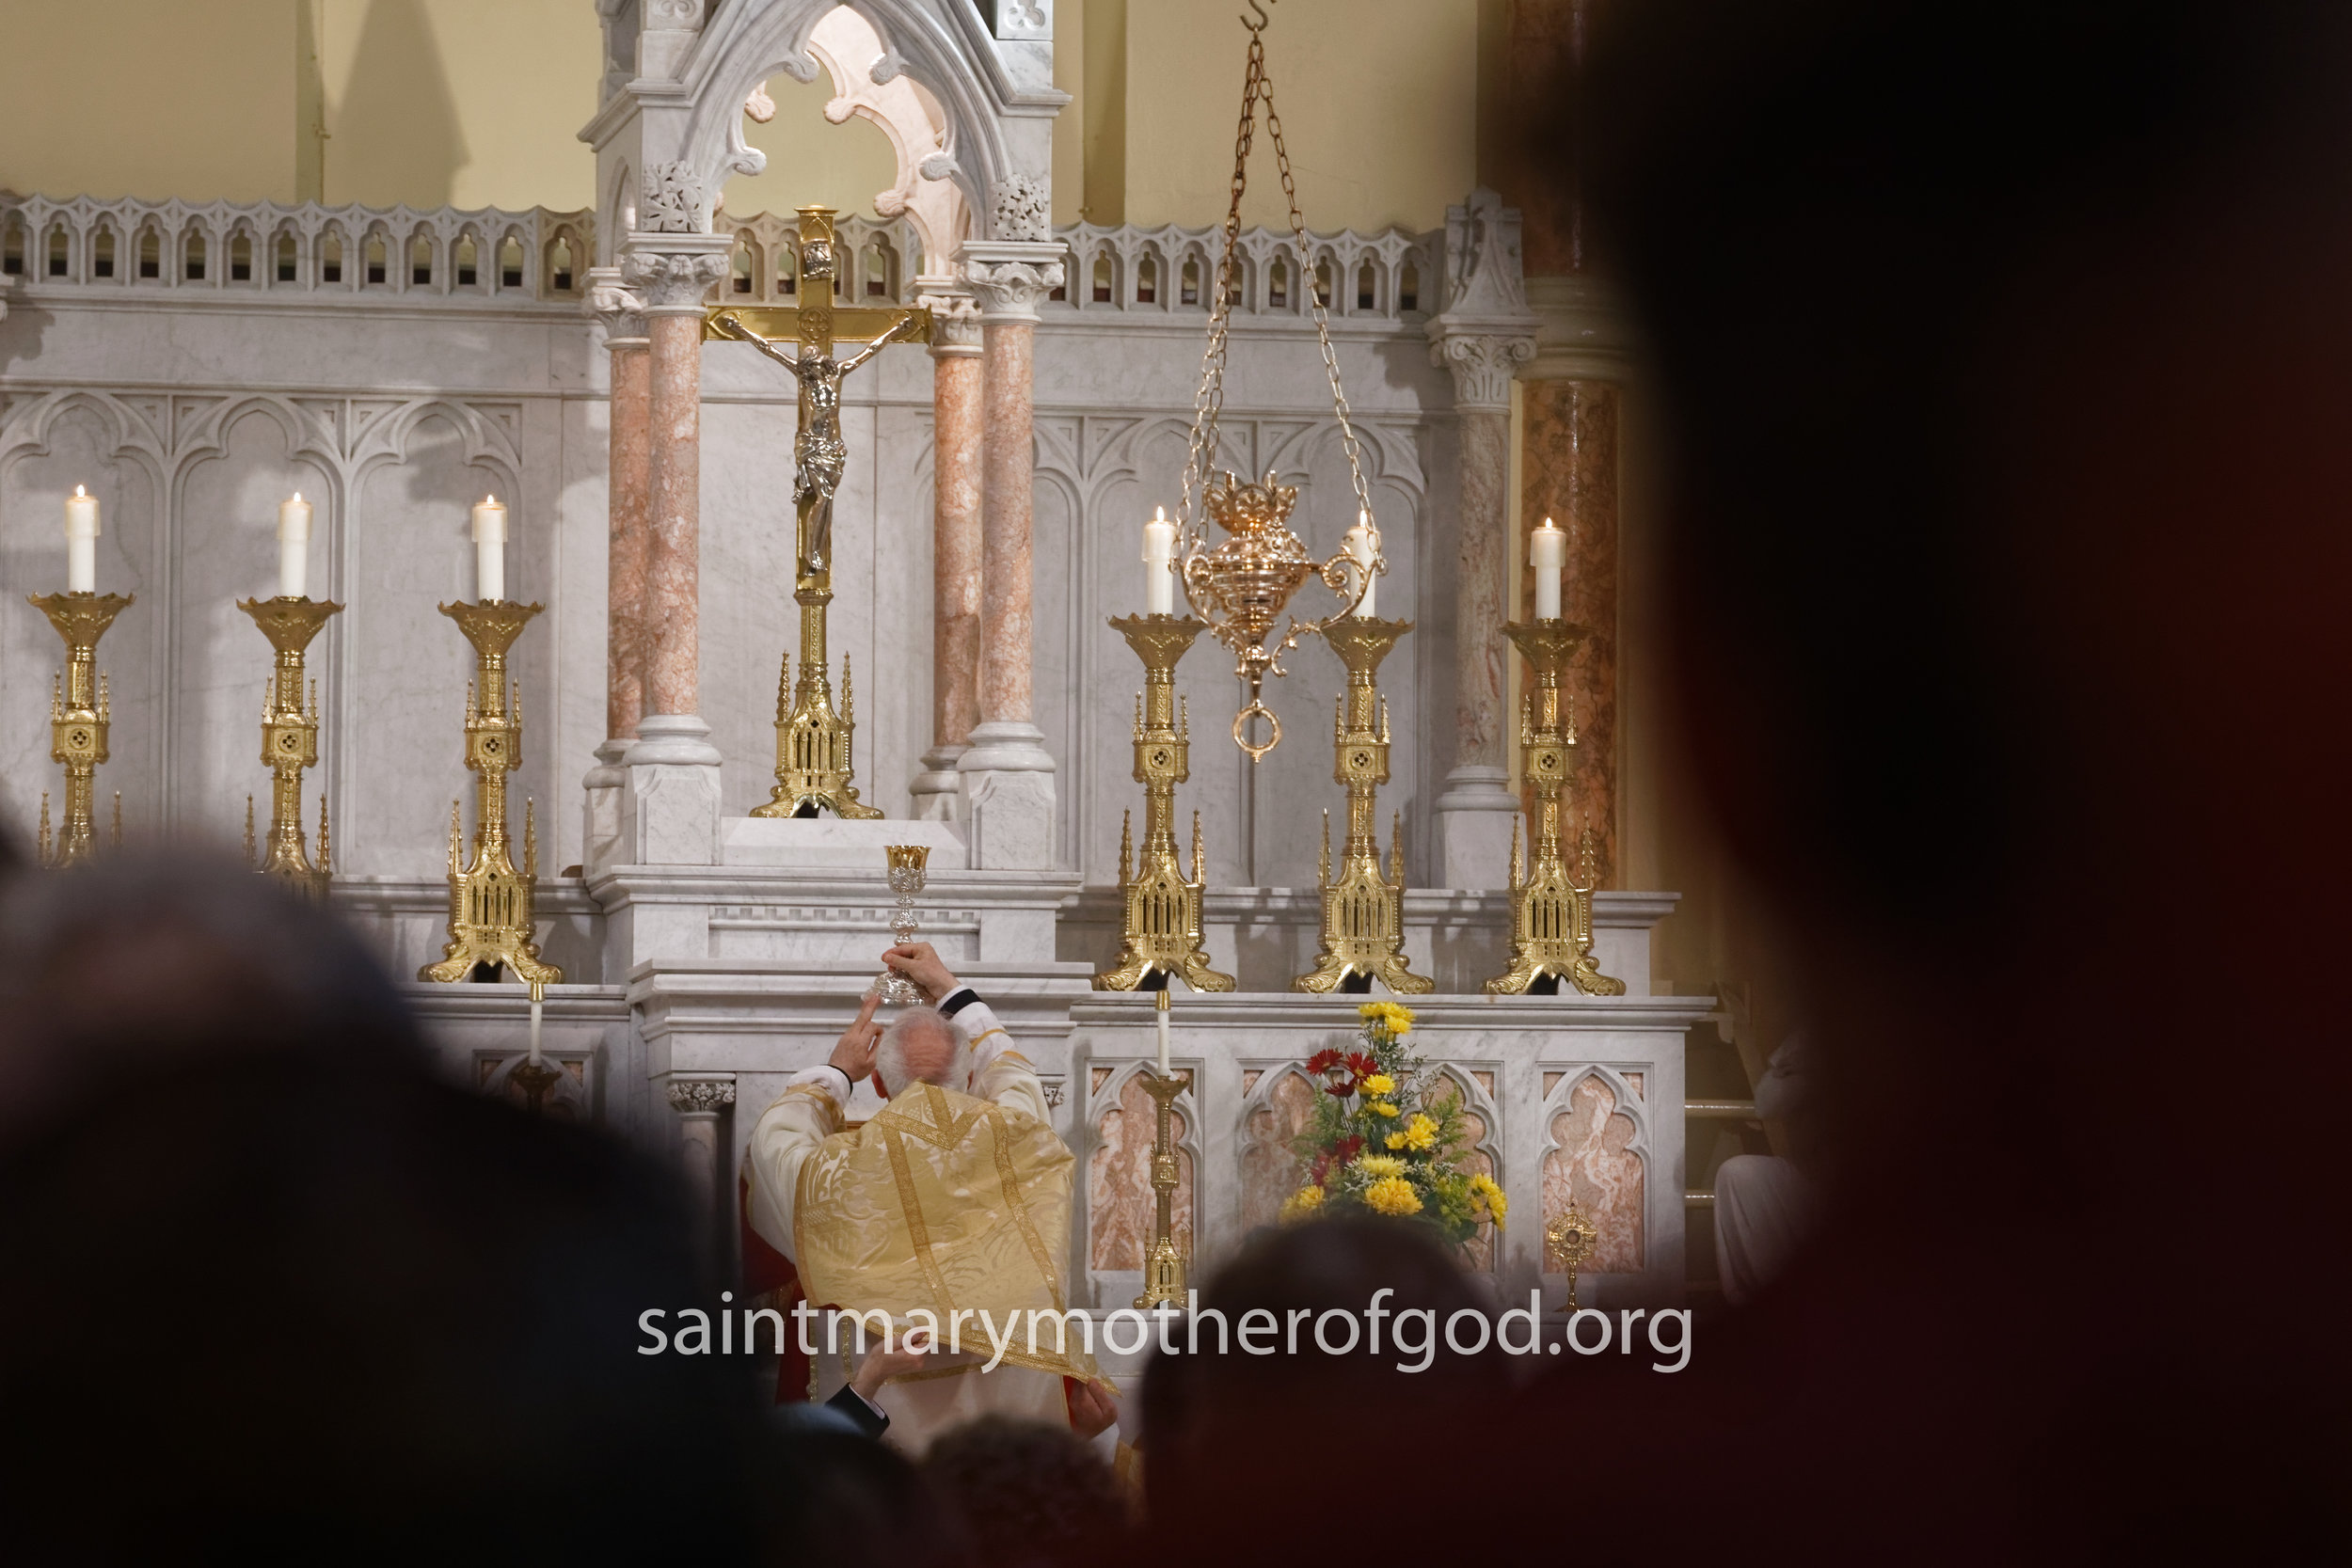 Saint Mary Mother of God Blessed Karl Vitacco Photos-41.jpg